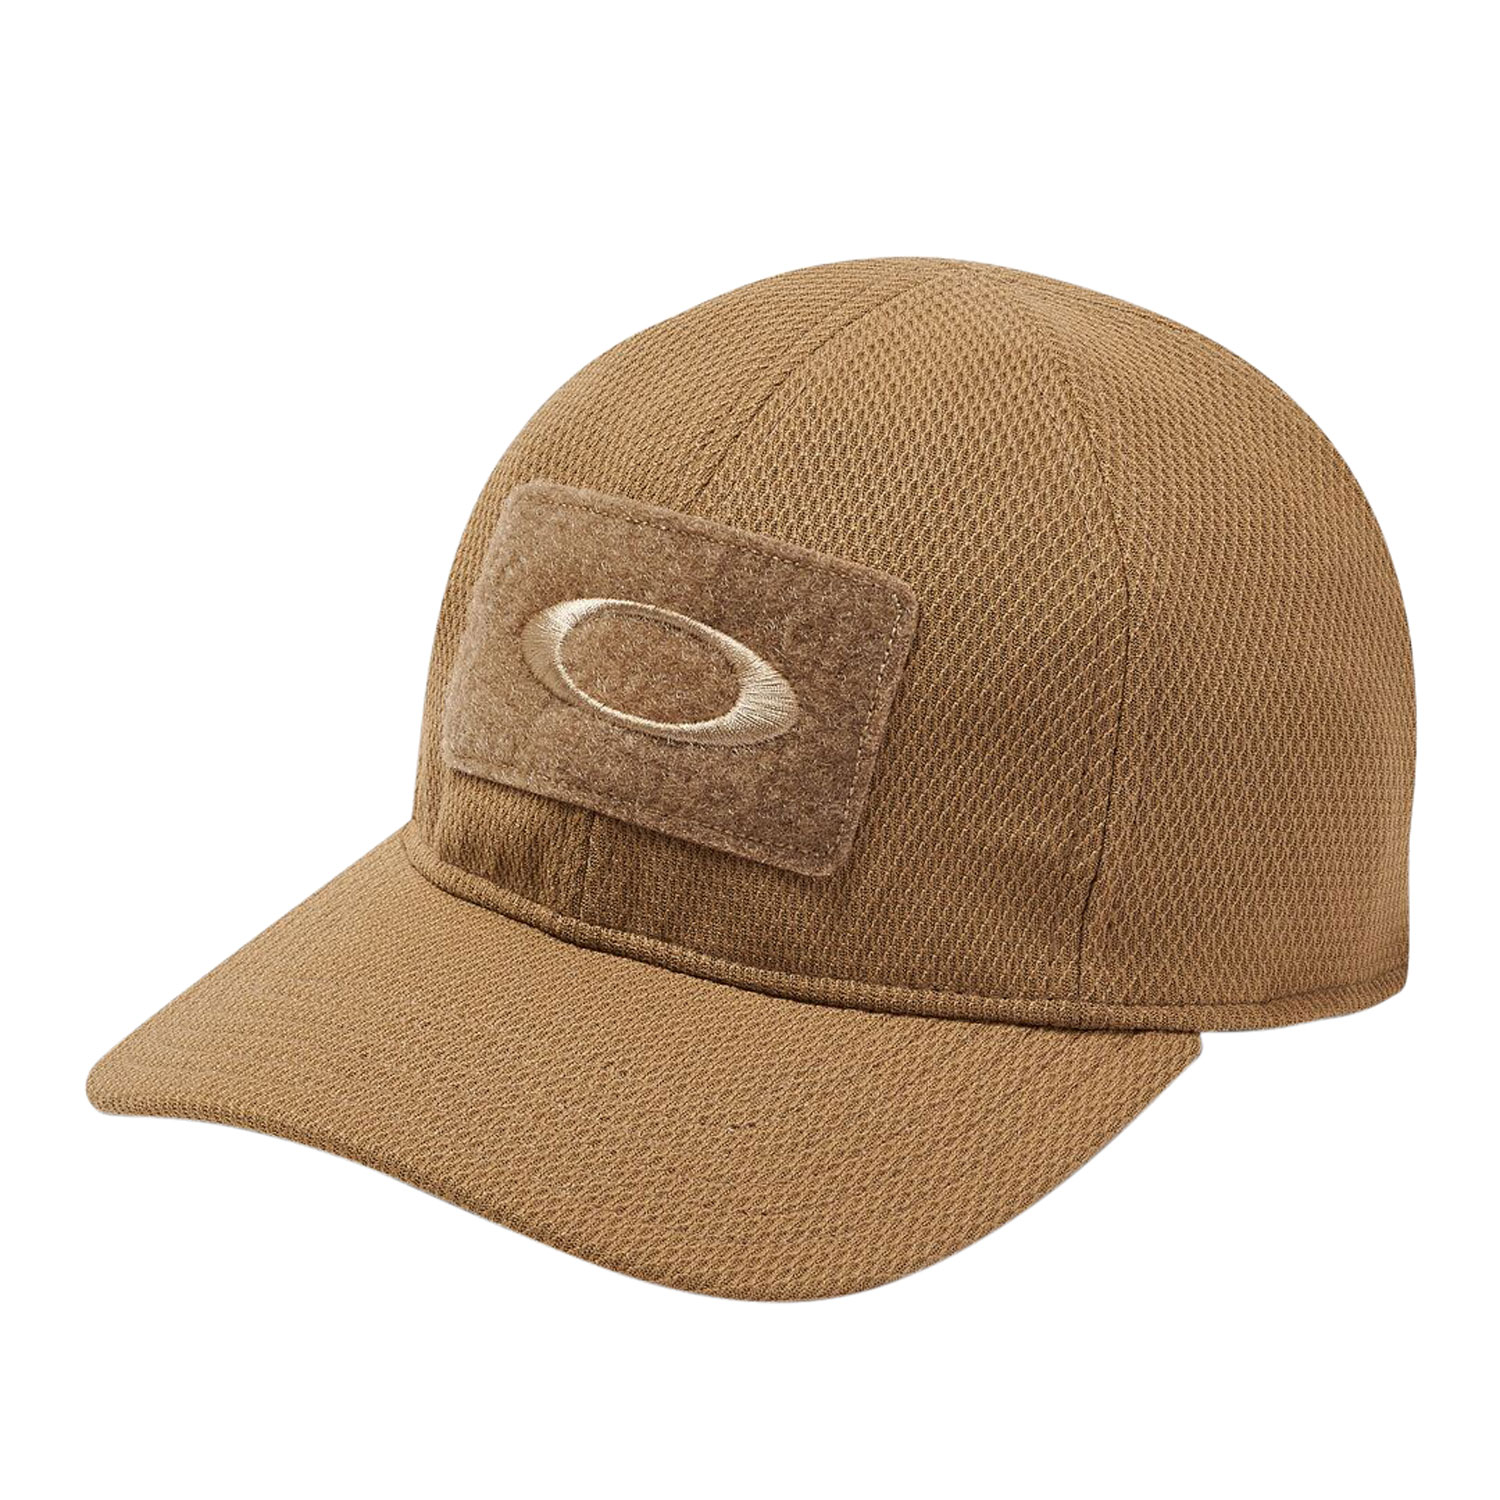 OAKLEY (LUXOTTICA) 911444A-86W SI Cotton Cap  Polyester Large/X-Large Coyote